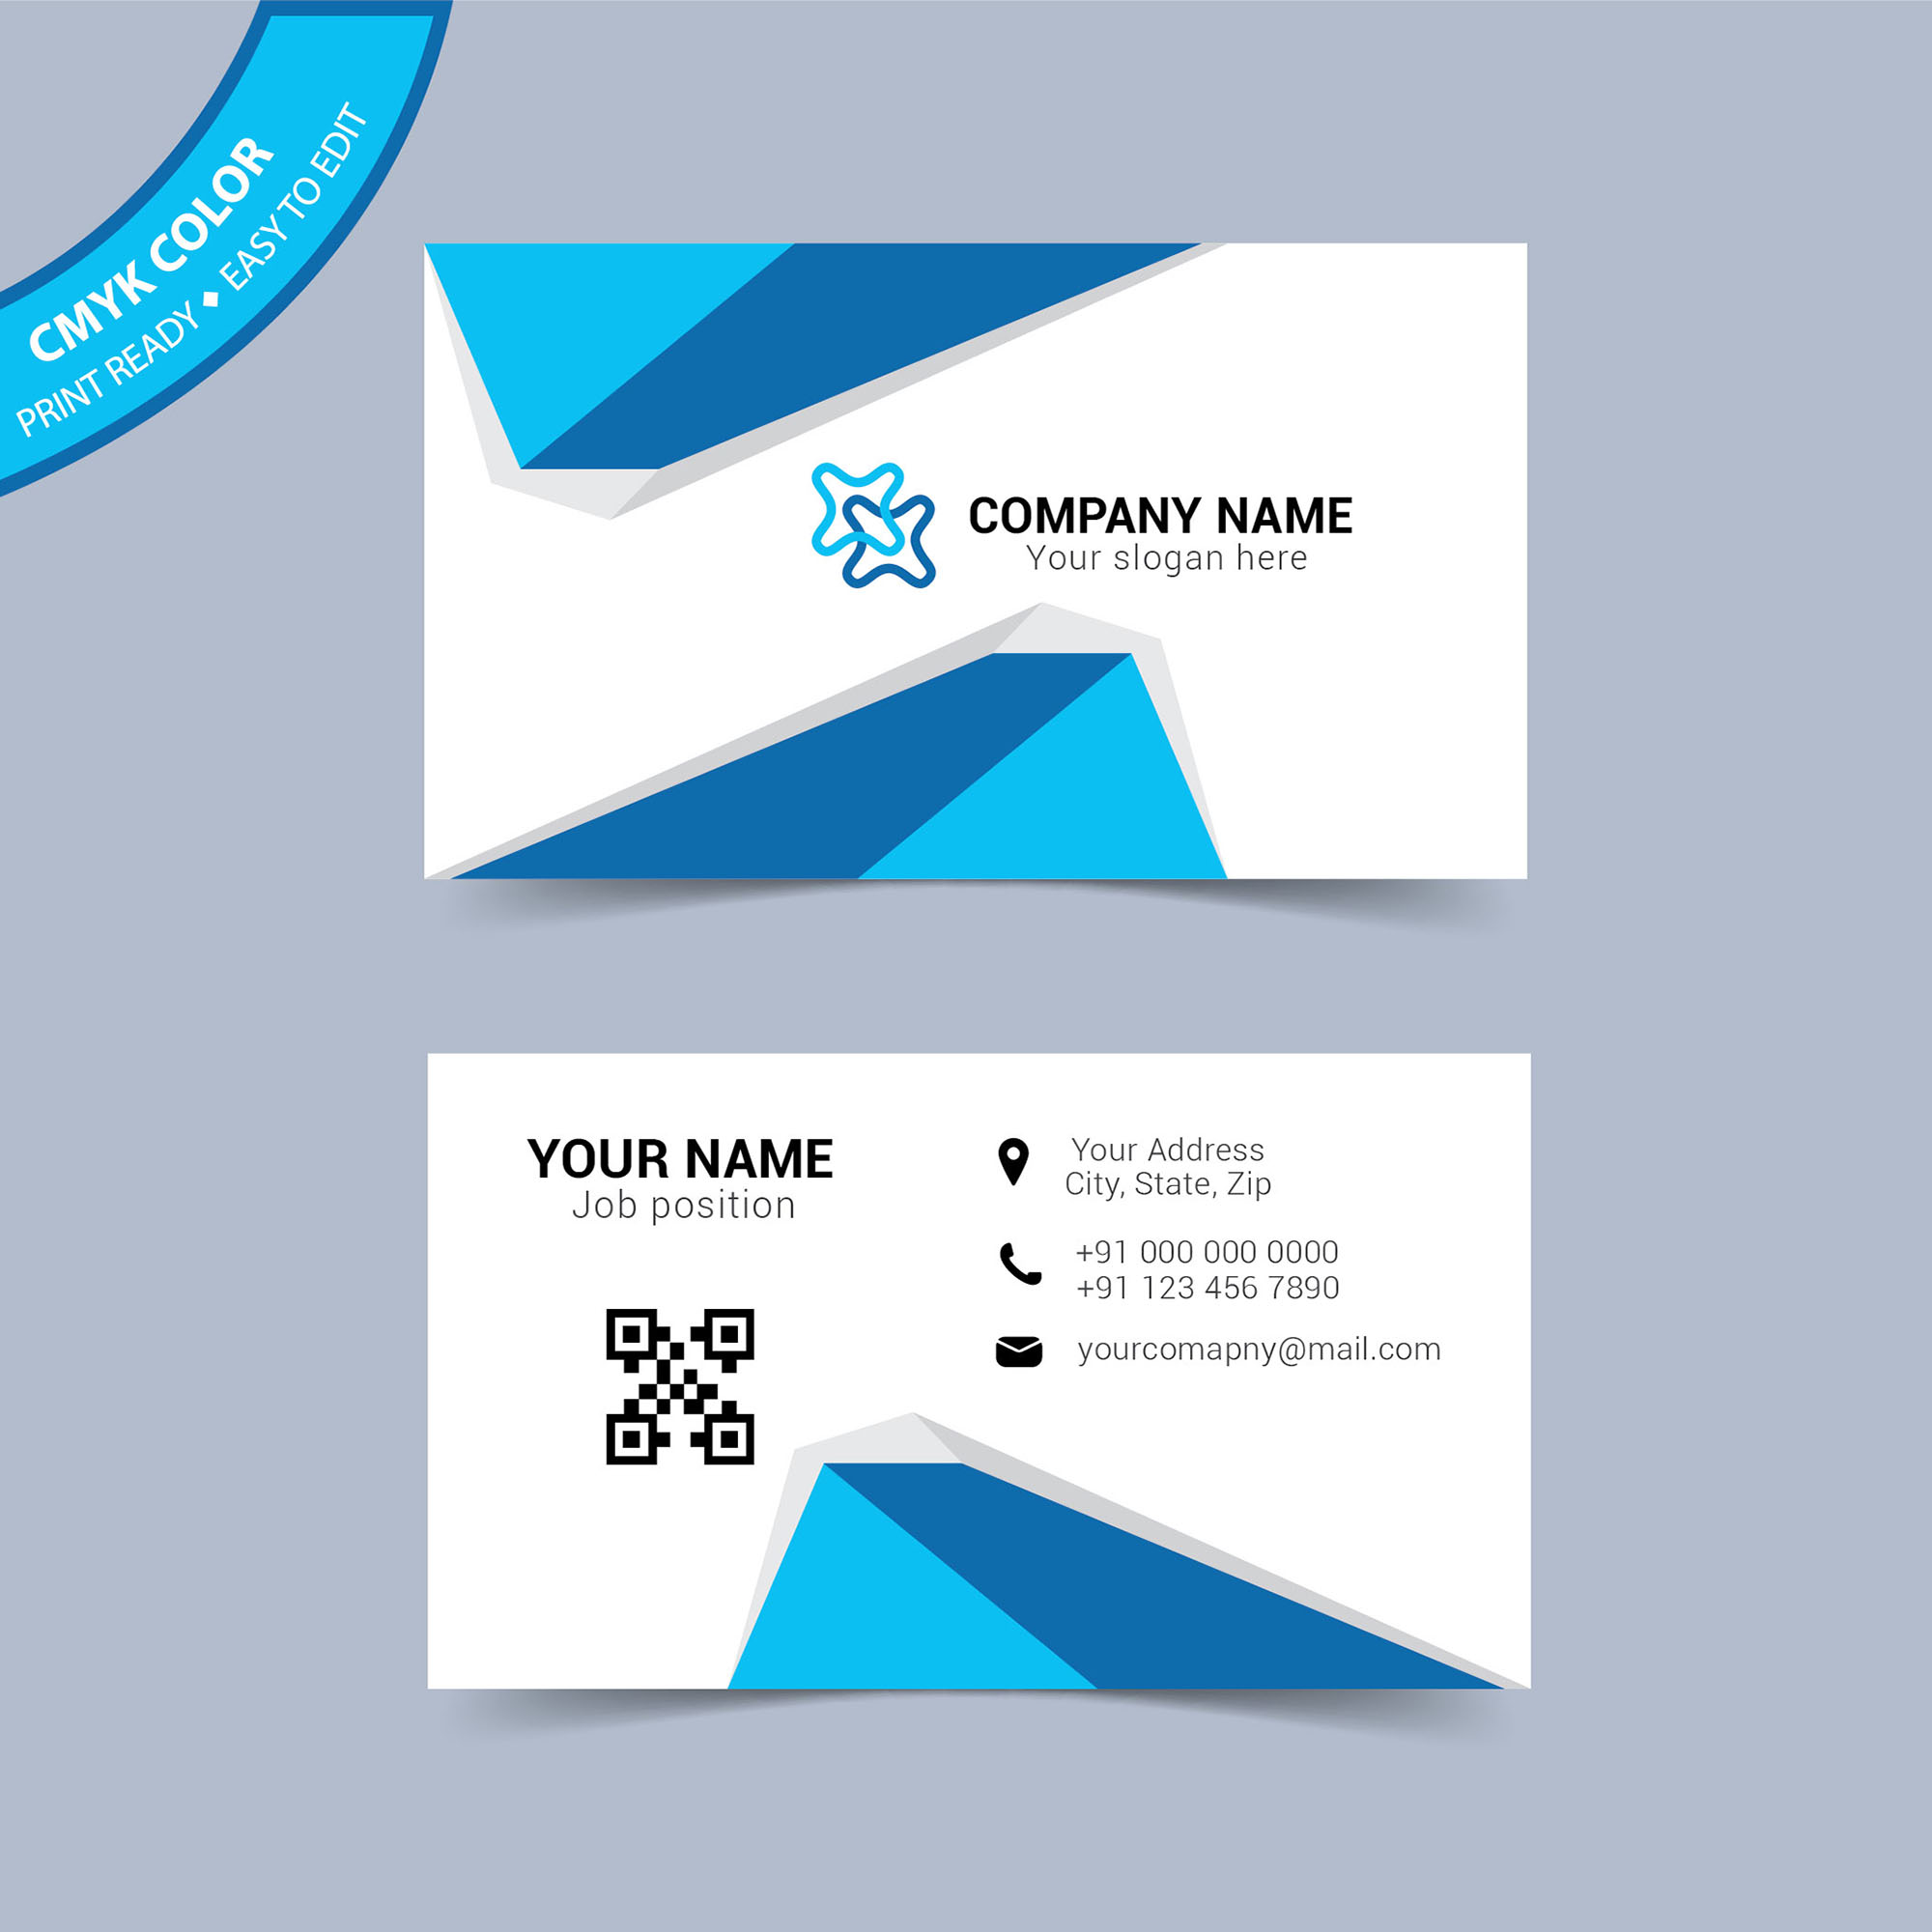 Business card layout template free download wisxi business card business cards business card design business card template design templates wajeb Choice Image